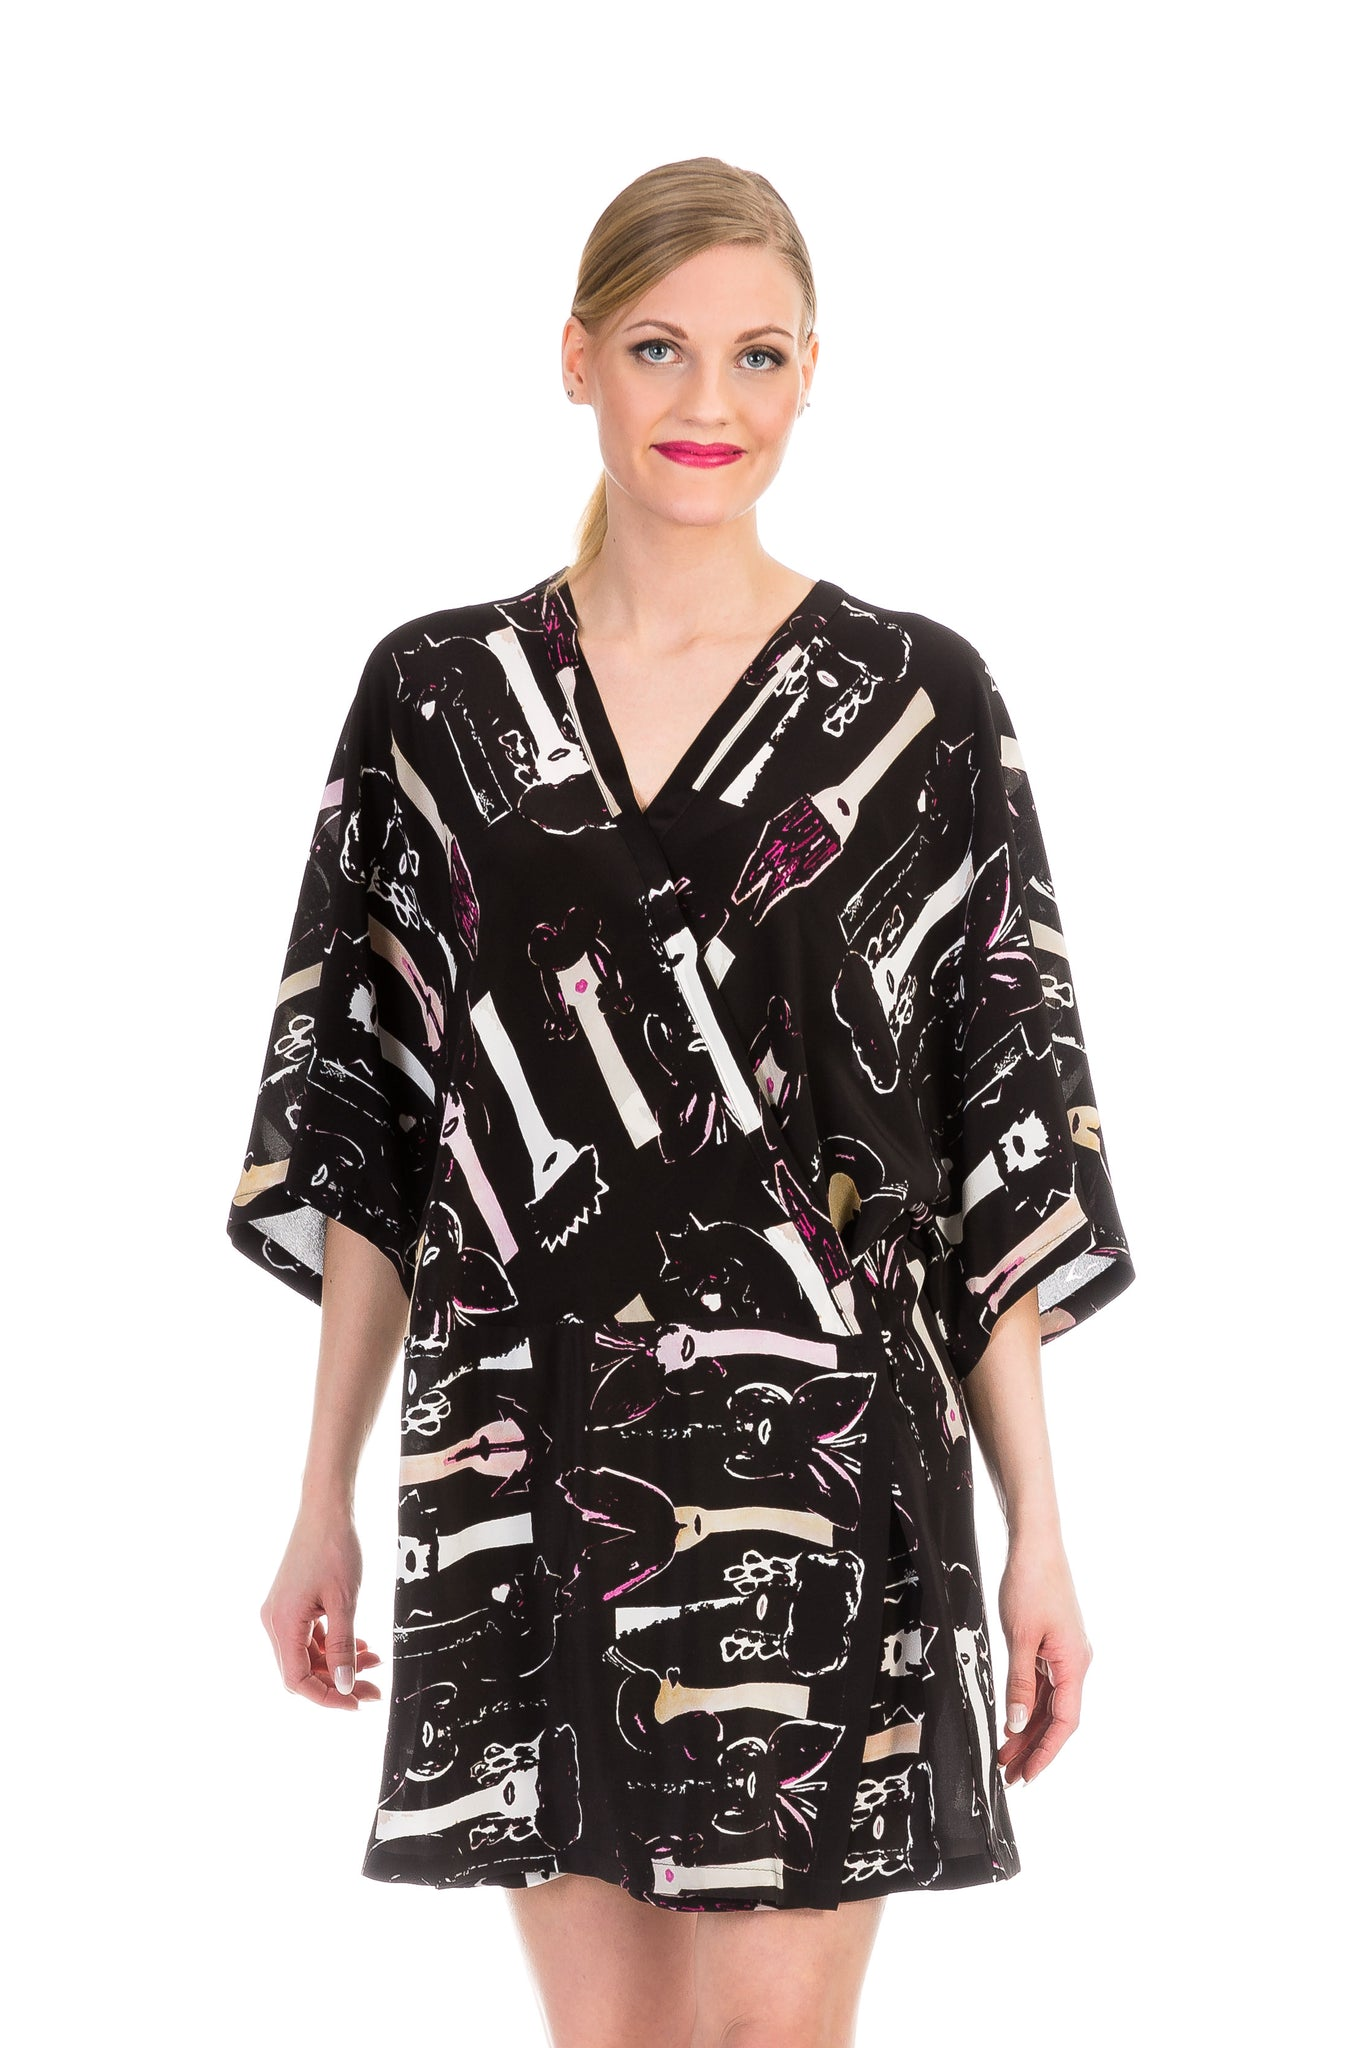 Wrap dress/kimono, butterfly black, silk